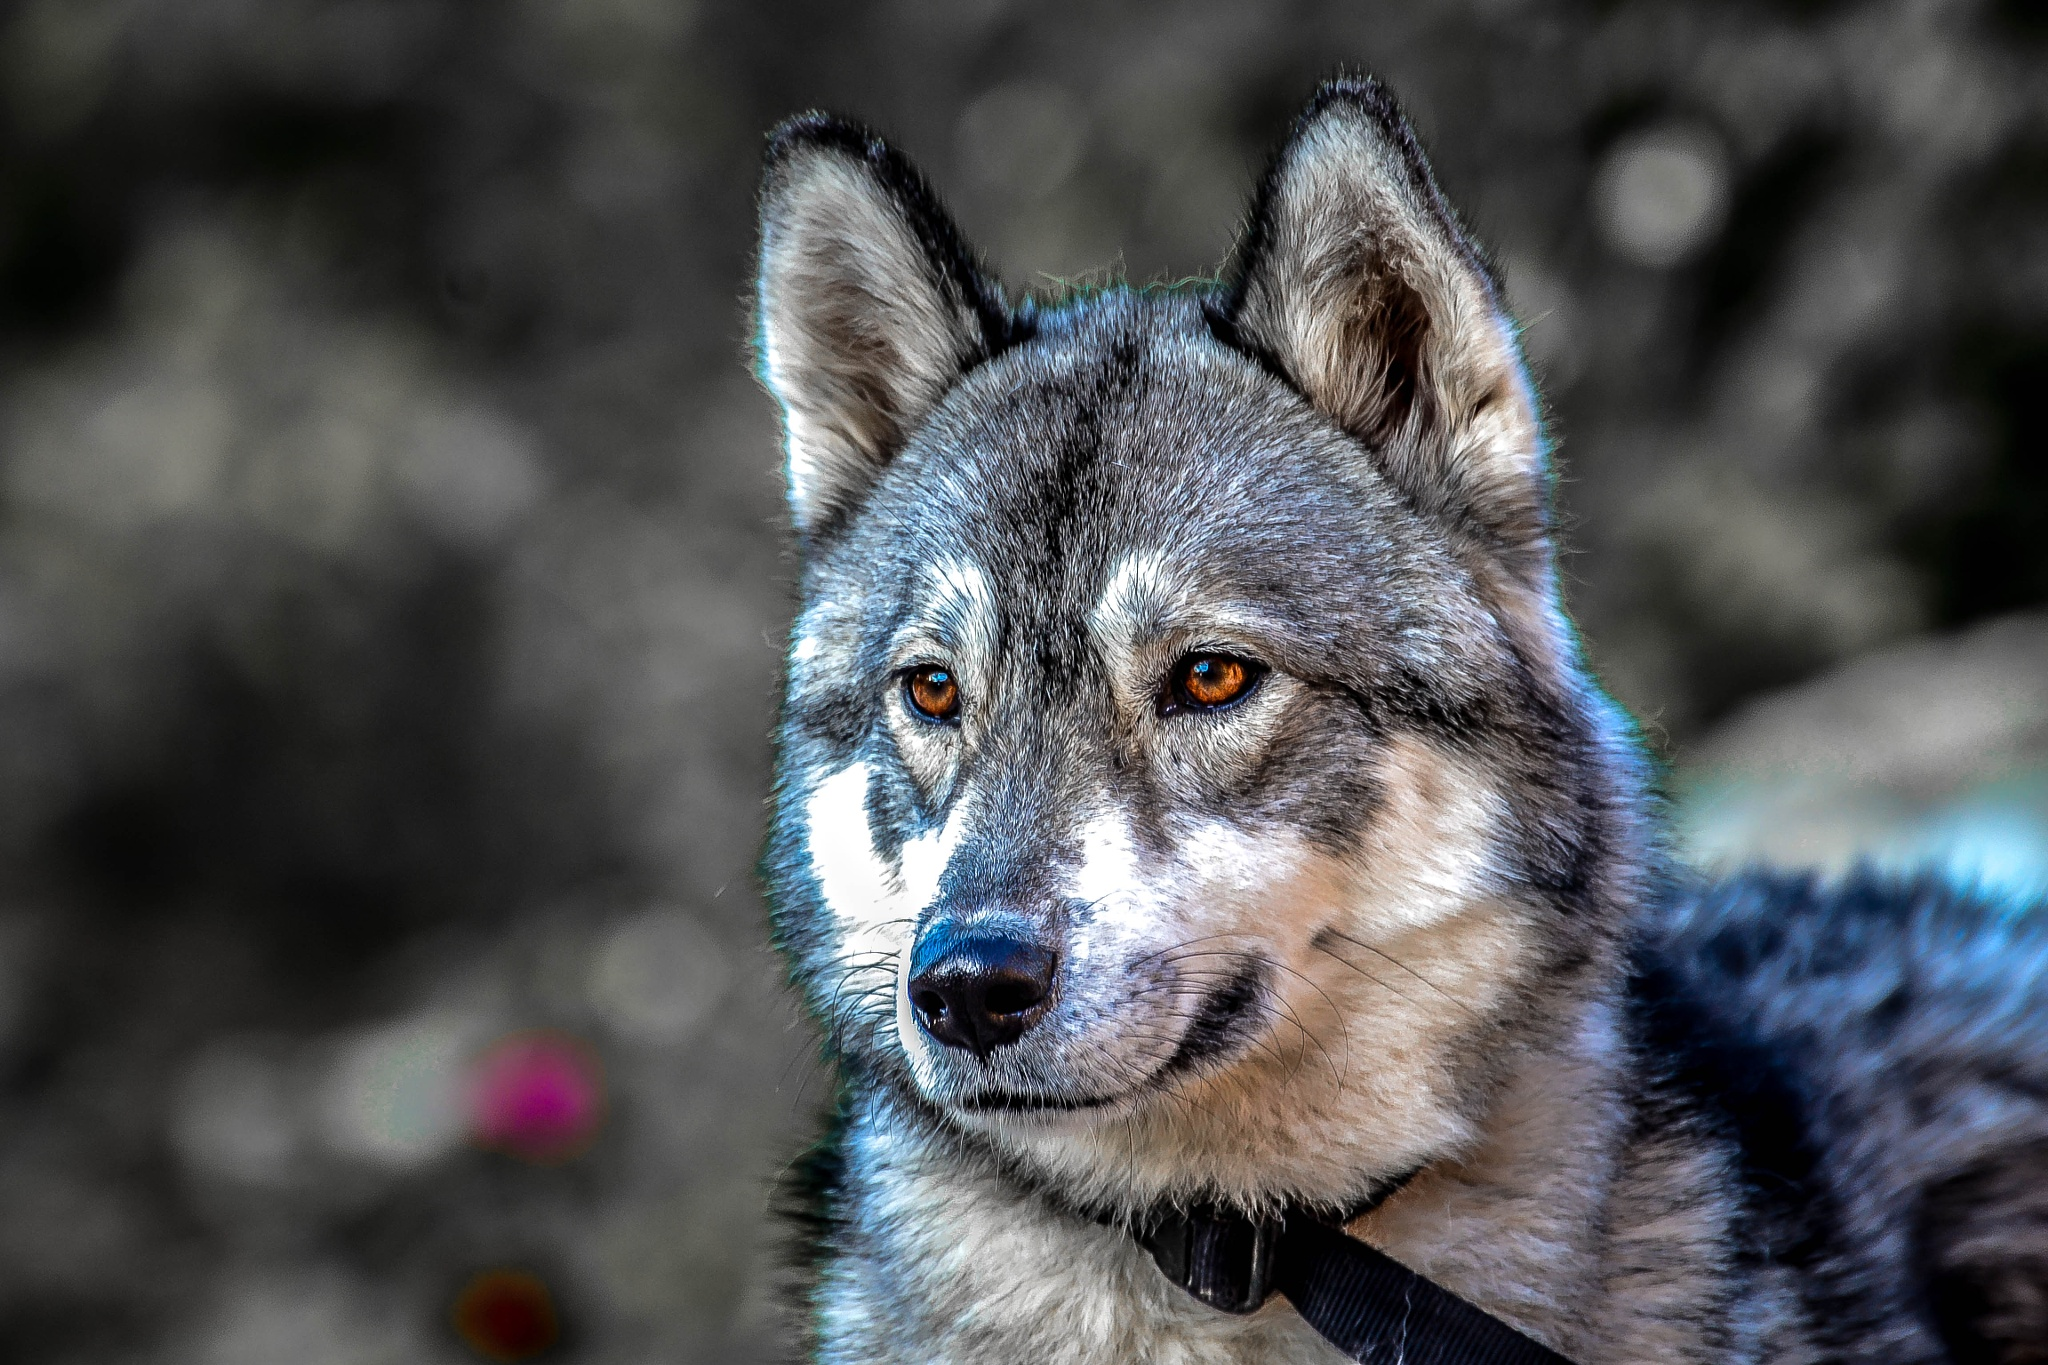 Huskey by ilseBodewes